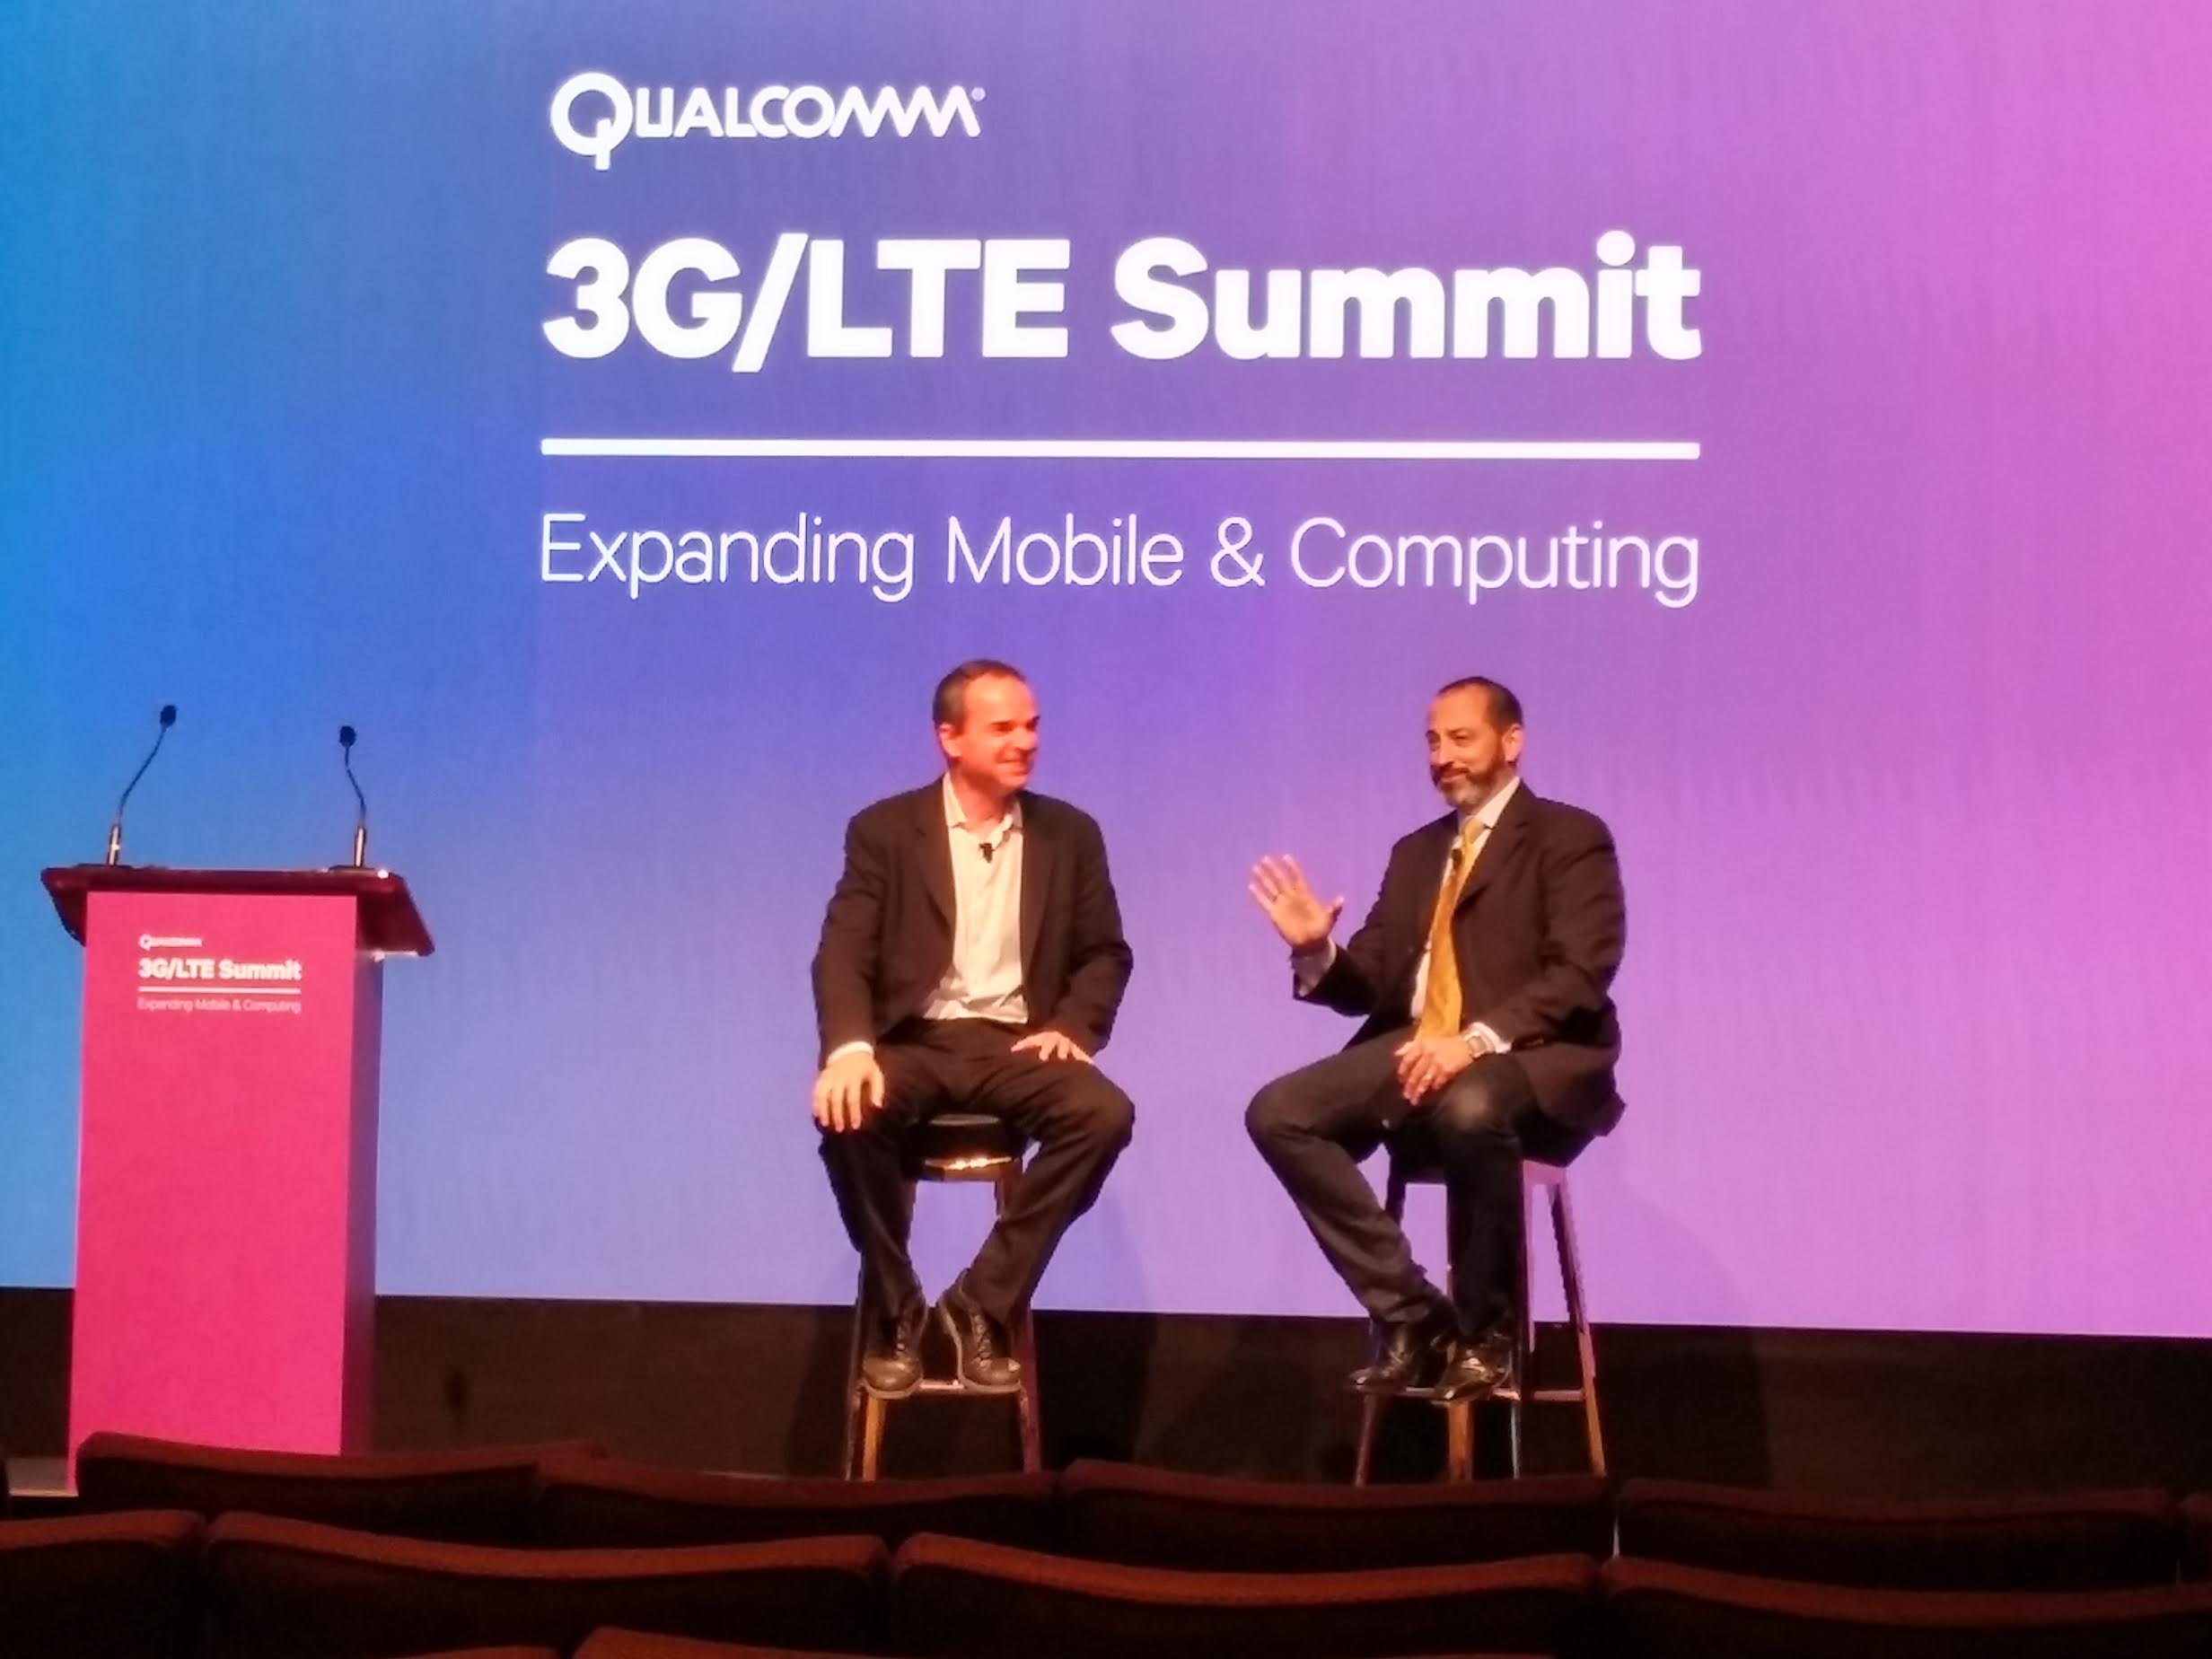 3G/LTE Summit